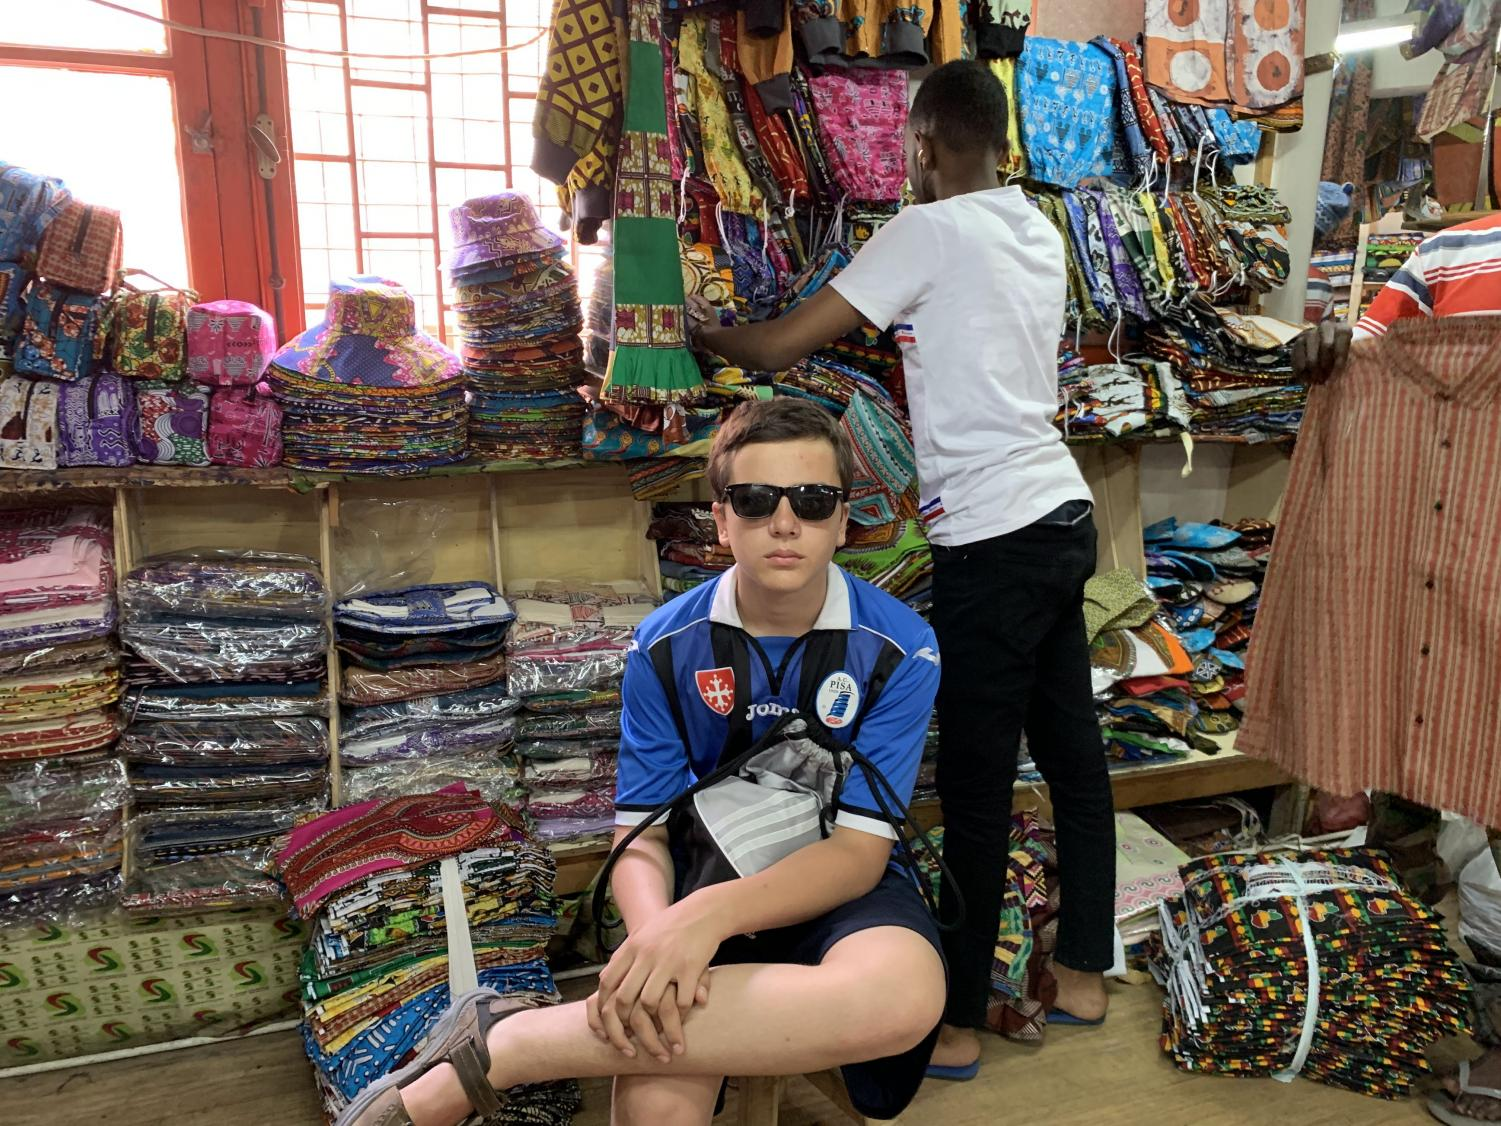 Jacopo+Villani%2C+the+younger+brother+of+Where+We+Live+sector+editor+David+Villani%2C+sits+in+a+workshop+at+the+March%C3%A9+Sandaga+in+downtown+Dakar%2C+Senegal.+This+busy+marketplace+is+known+throughout+Senegal+for+its+elaborate+fabrics+and+for+the+high+quality+of+the+artisans+who+work+here.+Jacopo+sports+%244+basketball+shorts%2C+hand-me-down+sandals%2C+a+jersey+from+his+hometown+soccer+team%2C+and+sunglasses+stolen+from+his+brother.++Steal+his+look%E2%80%94if+you+dare.